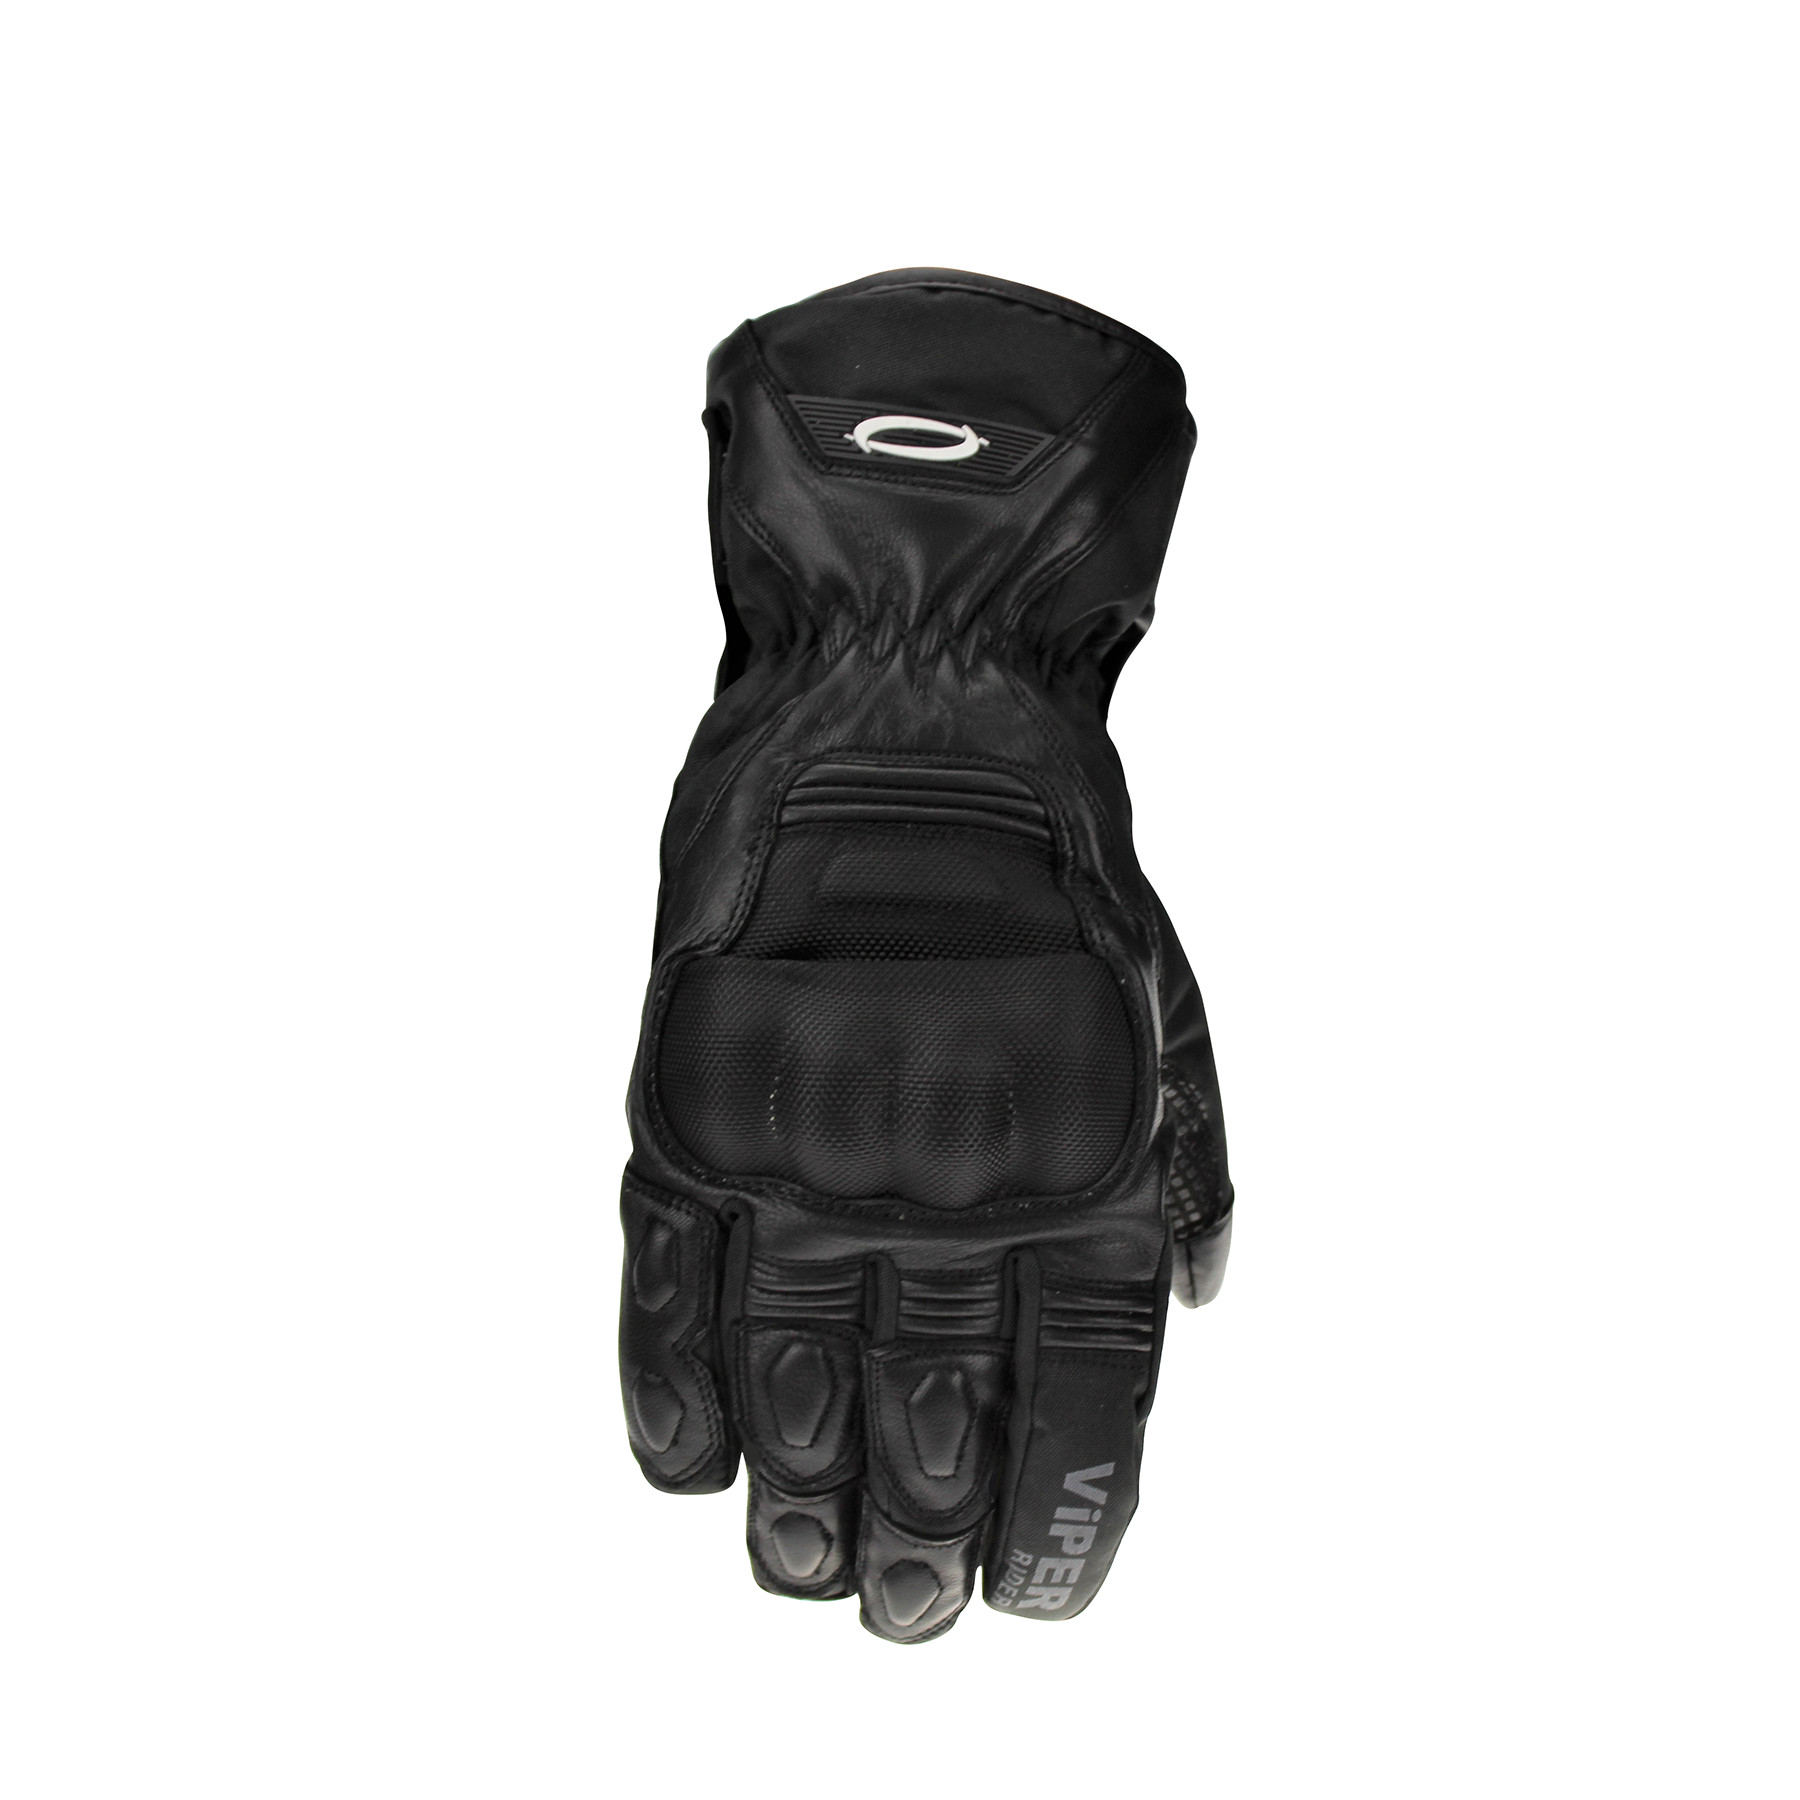 Axis 8 CE Gloves